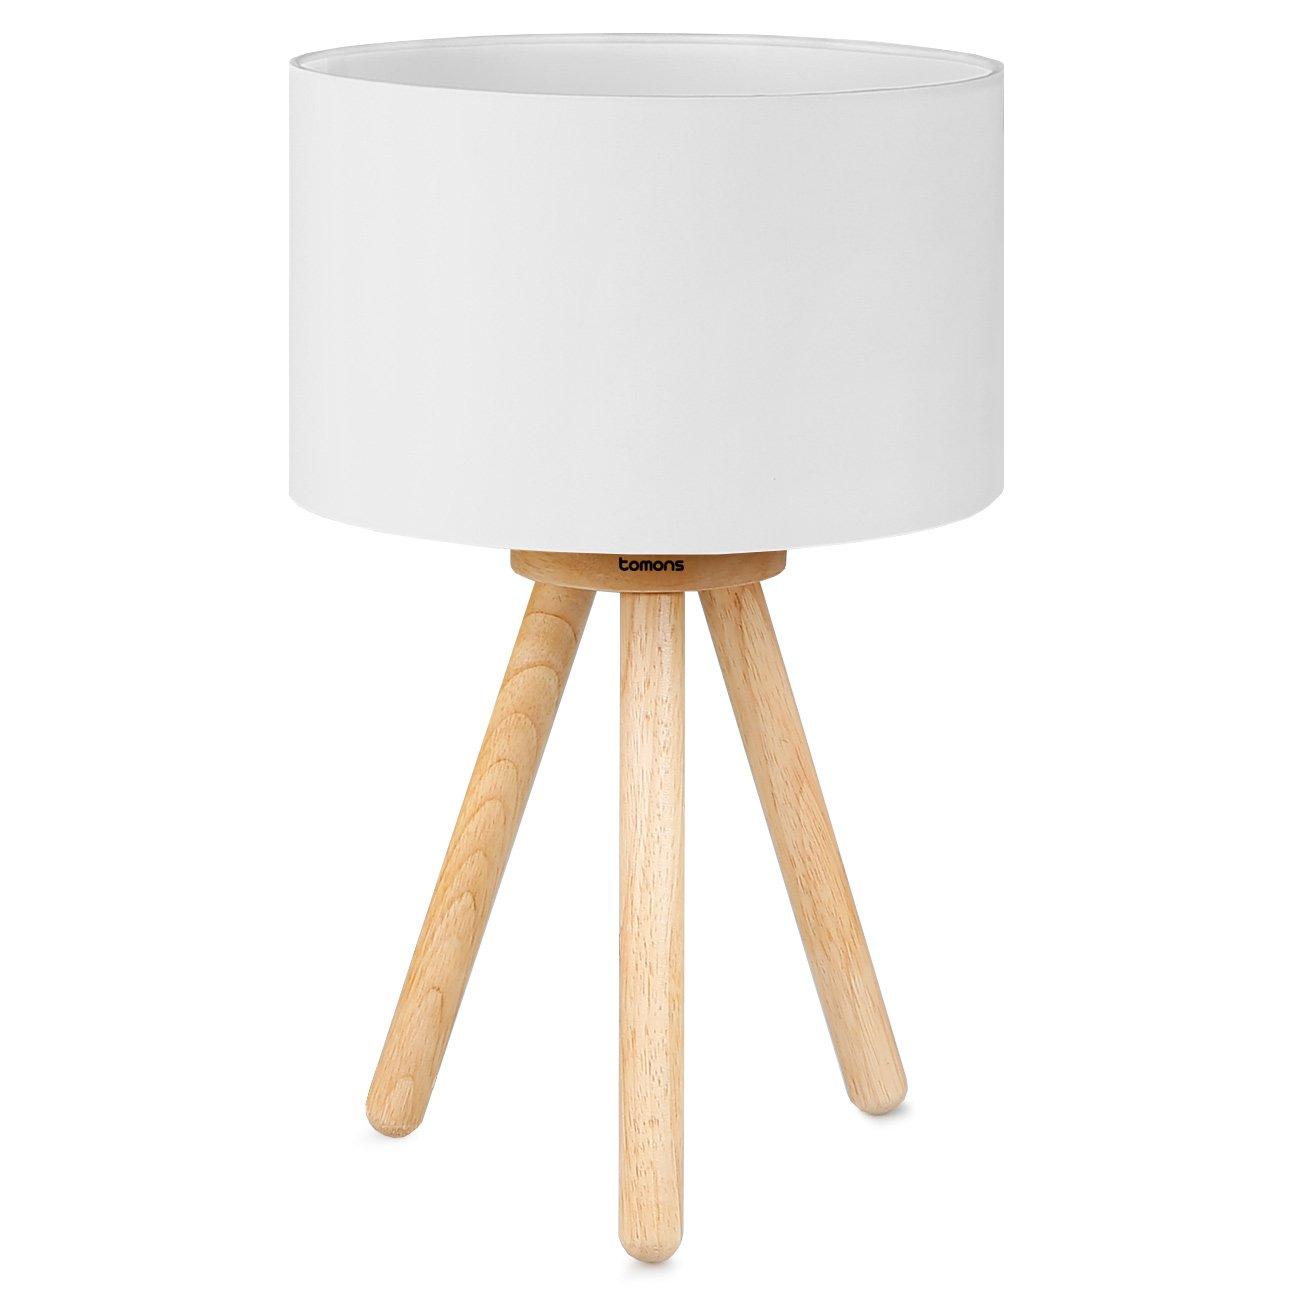 Tomons Wood Tripod Bedside Lamp, Simple Design with Soft Light for Bedroom Decorated in Warm and Cozy Ambience, Polyester White Fabric Lampshade, Packaged with 4W LED Bulb, Warm White Light, 39cm High by Tomons (Image #1)